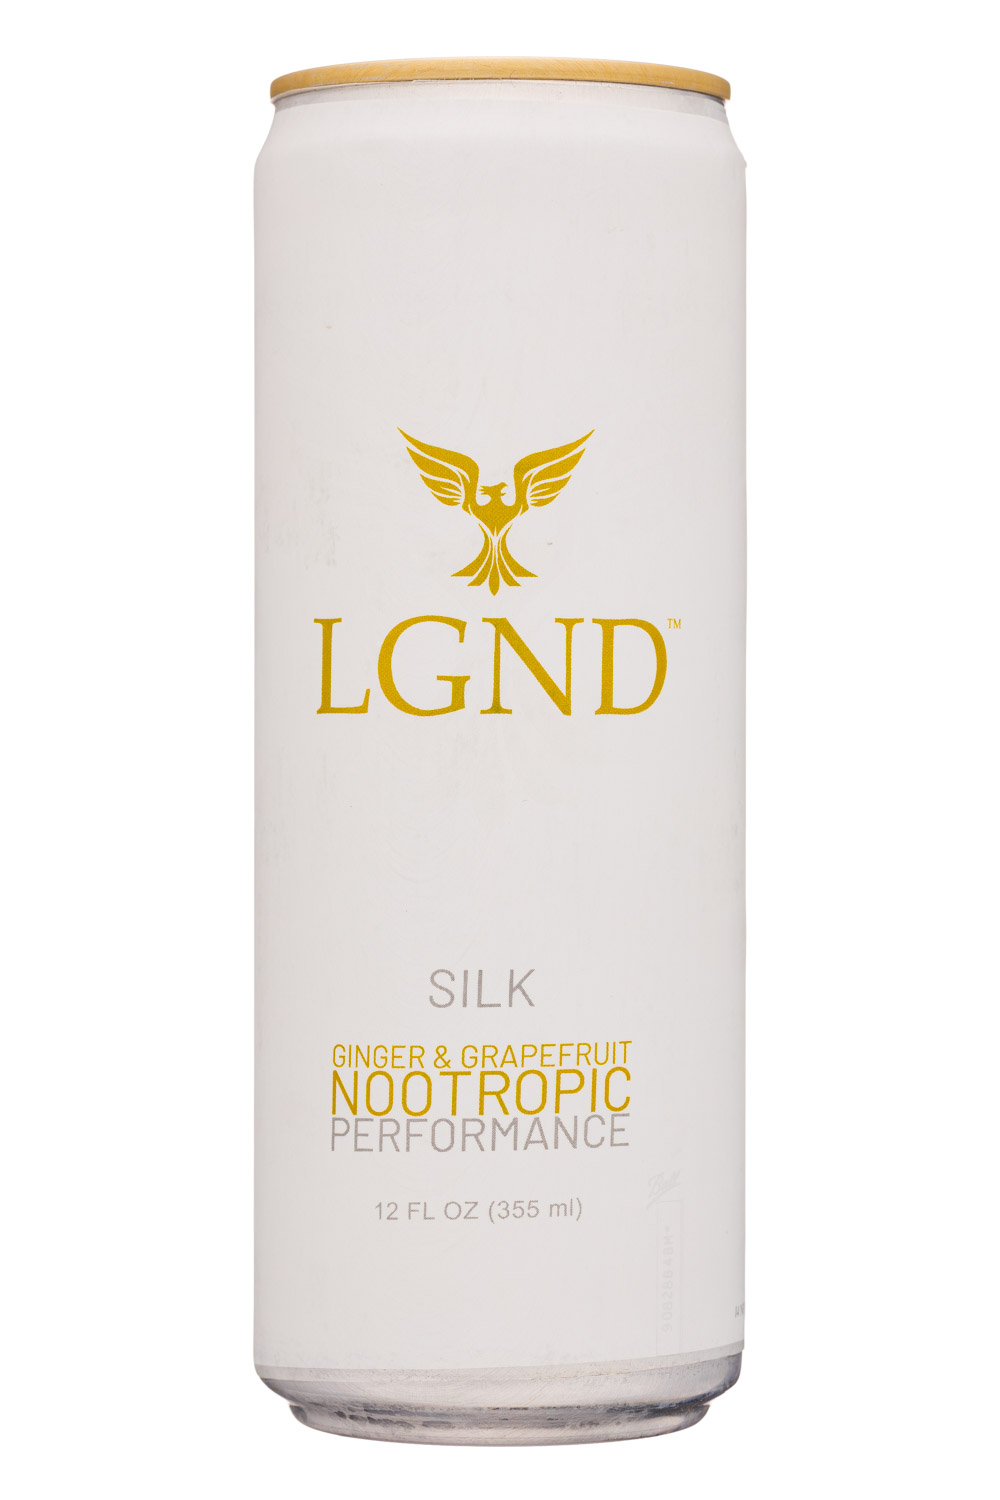 Silk Ginger & Grapefruit Nootropic Performance